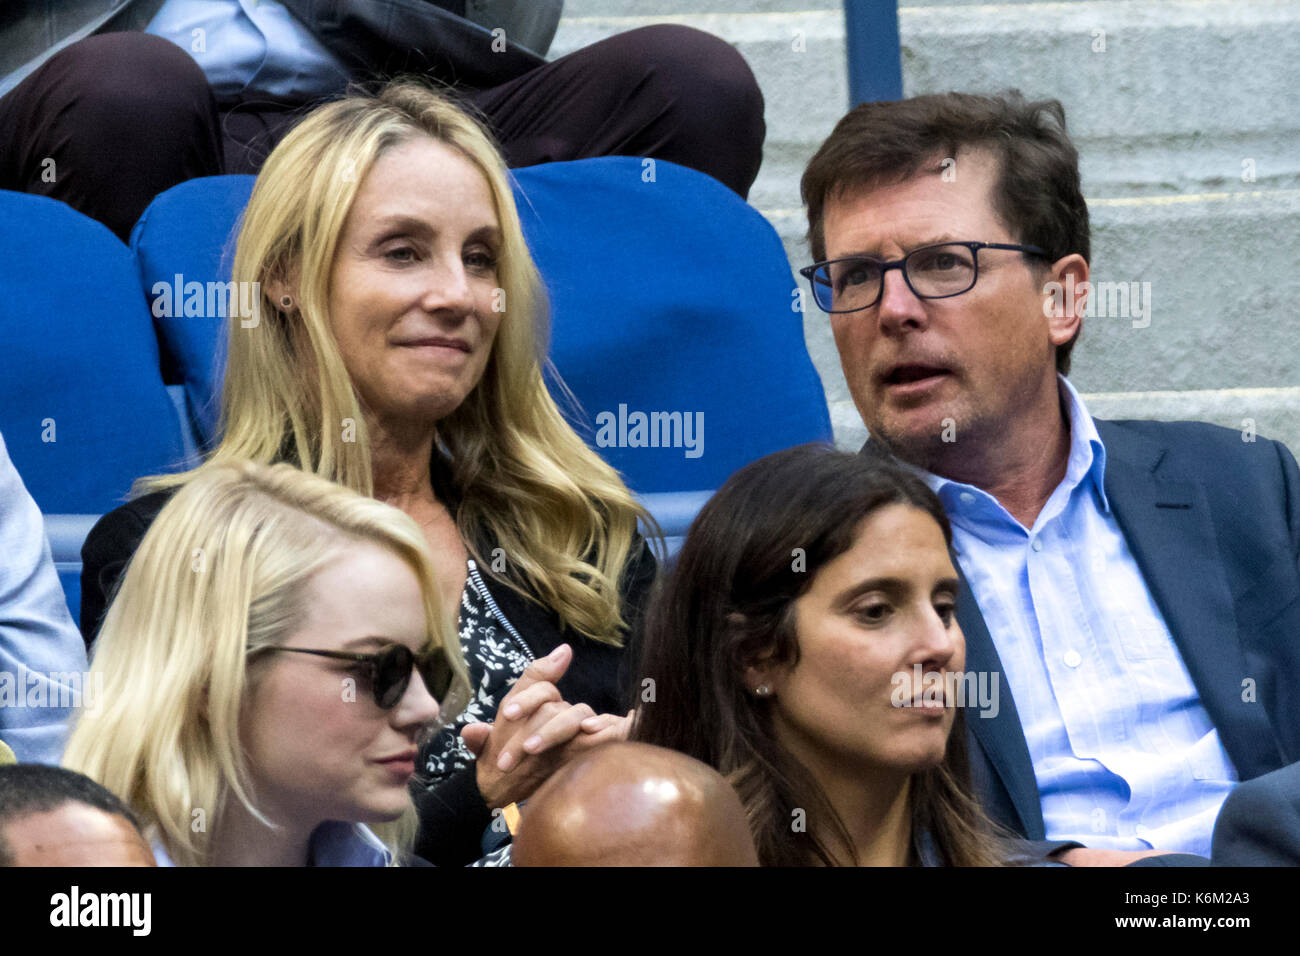 Tracy Pollan and Michael J. Fox, attend the 2017 US Open Women's Final Stock Photo